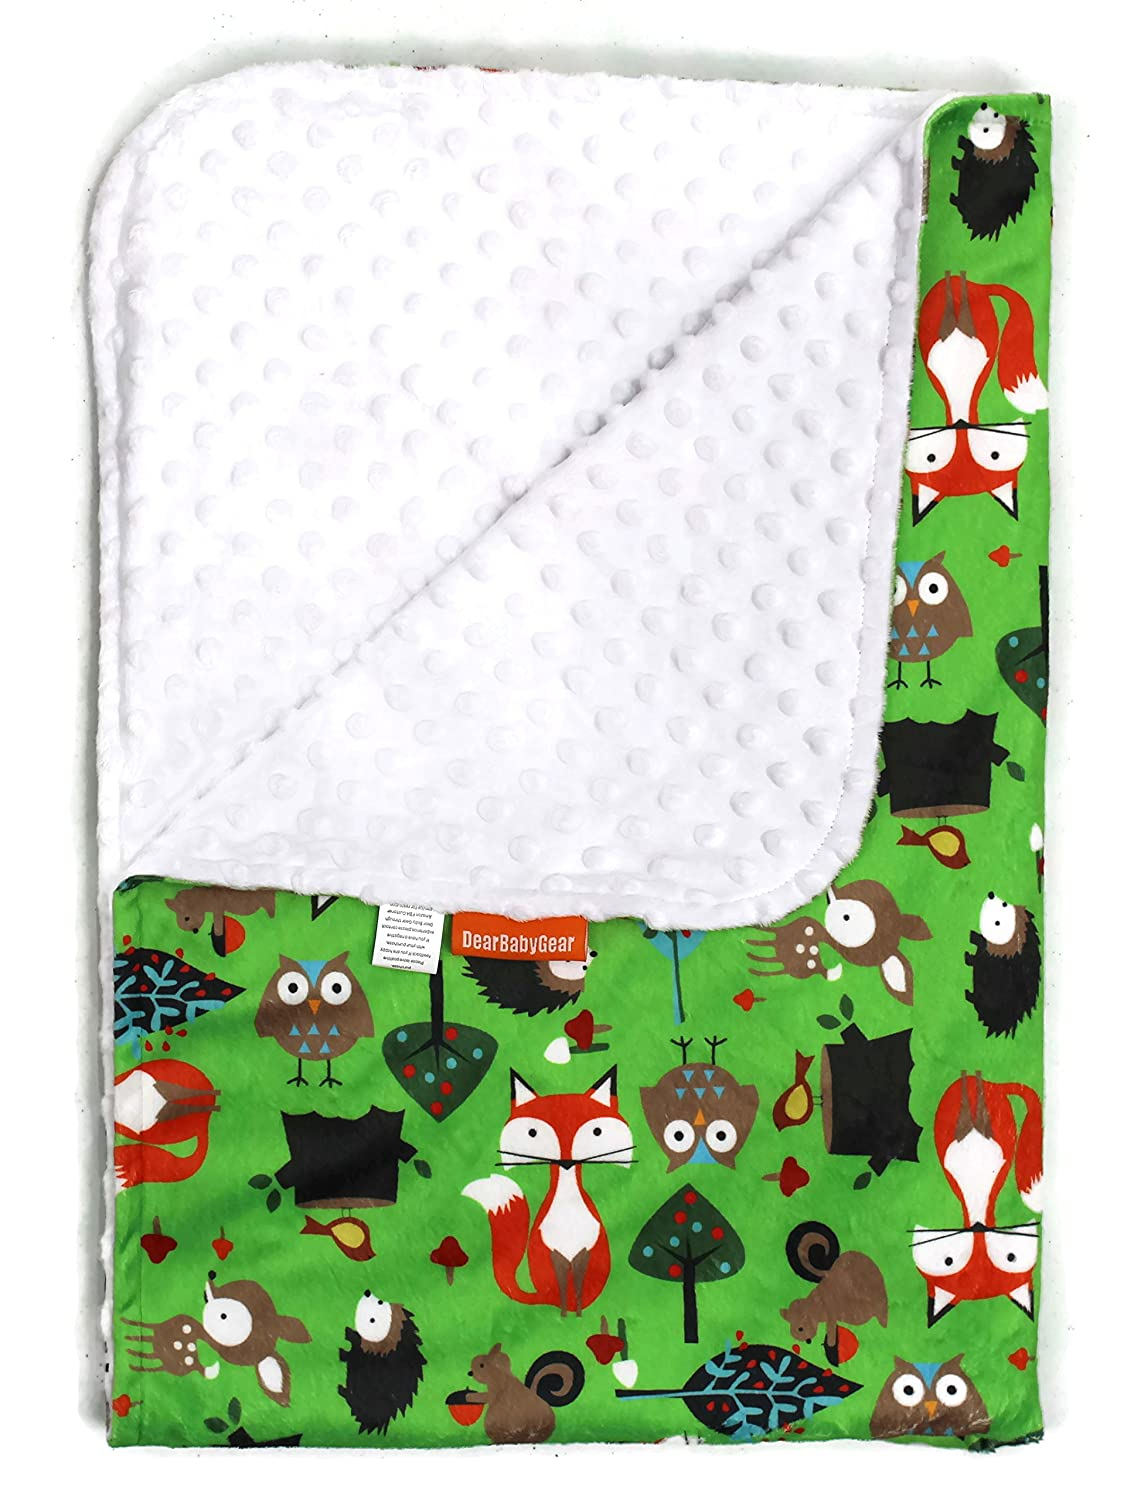 Dear Baby Gear Deluxe Baby Blanket, Foxes, Multi Color / White Minky Dot, 38 Inches by 29 Inches